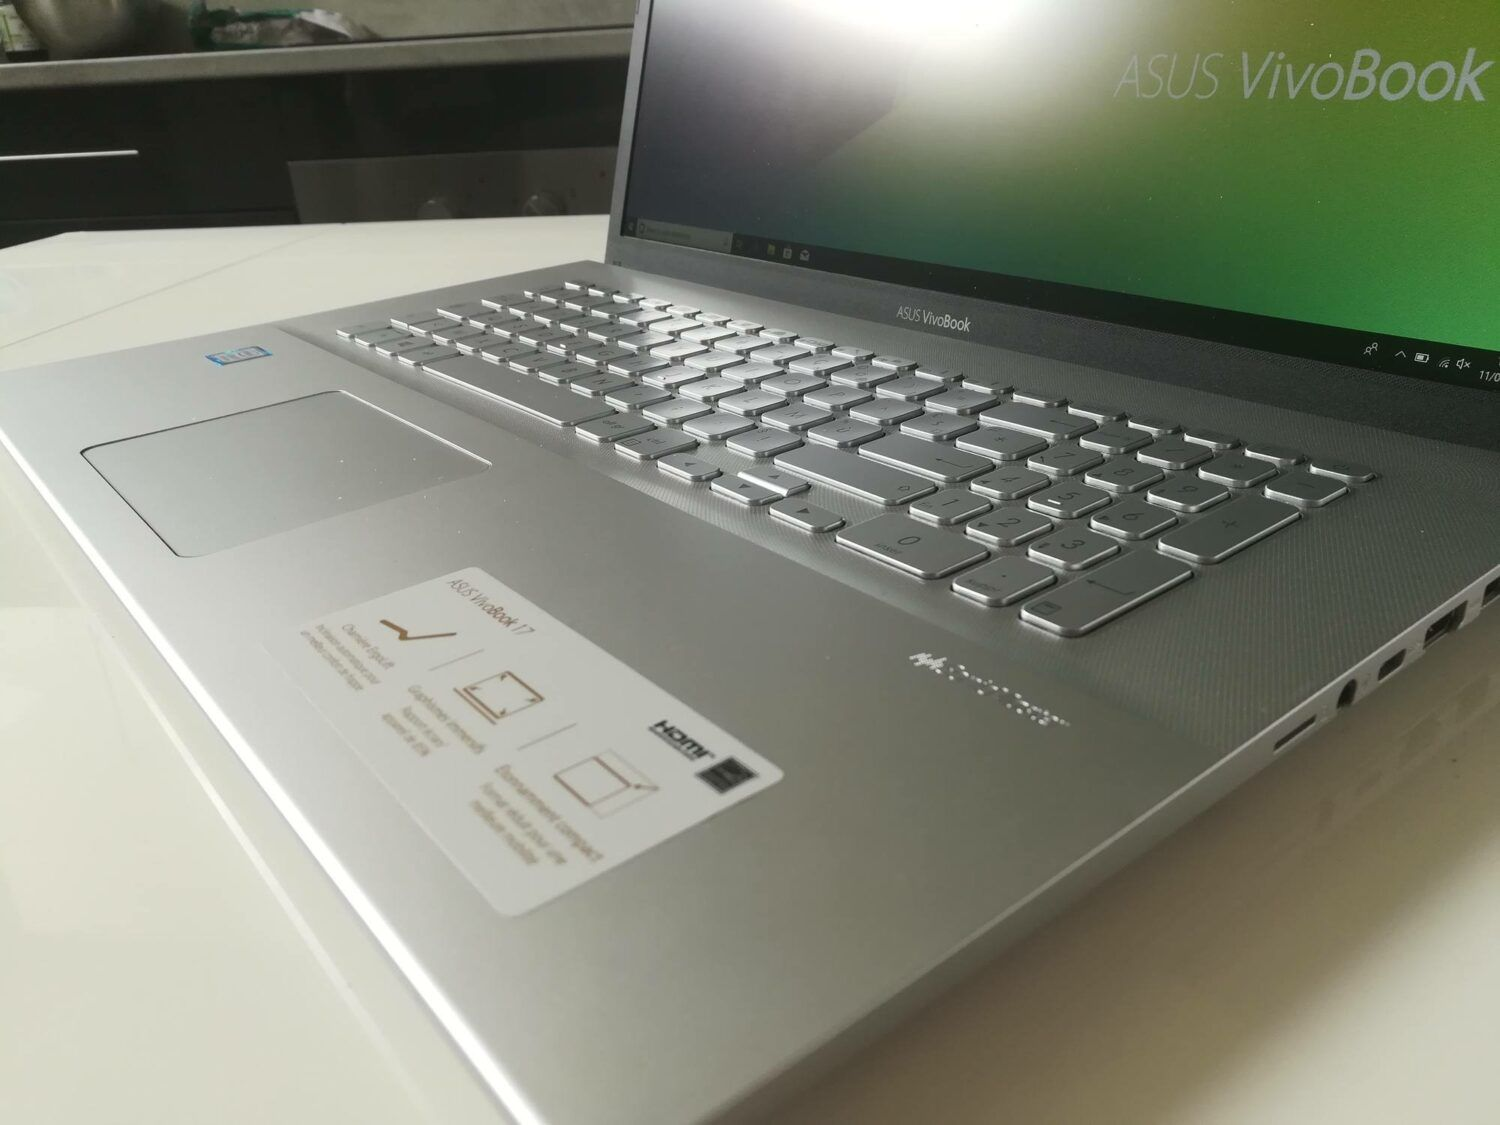 Test du ASUS Vivobook 17 - photo du clavier